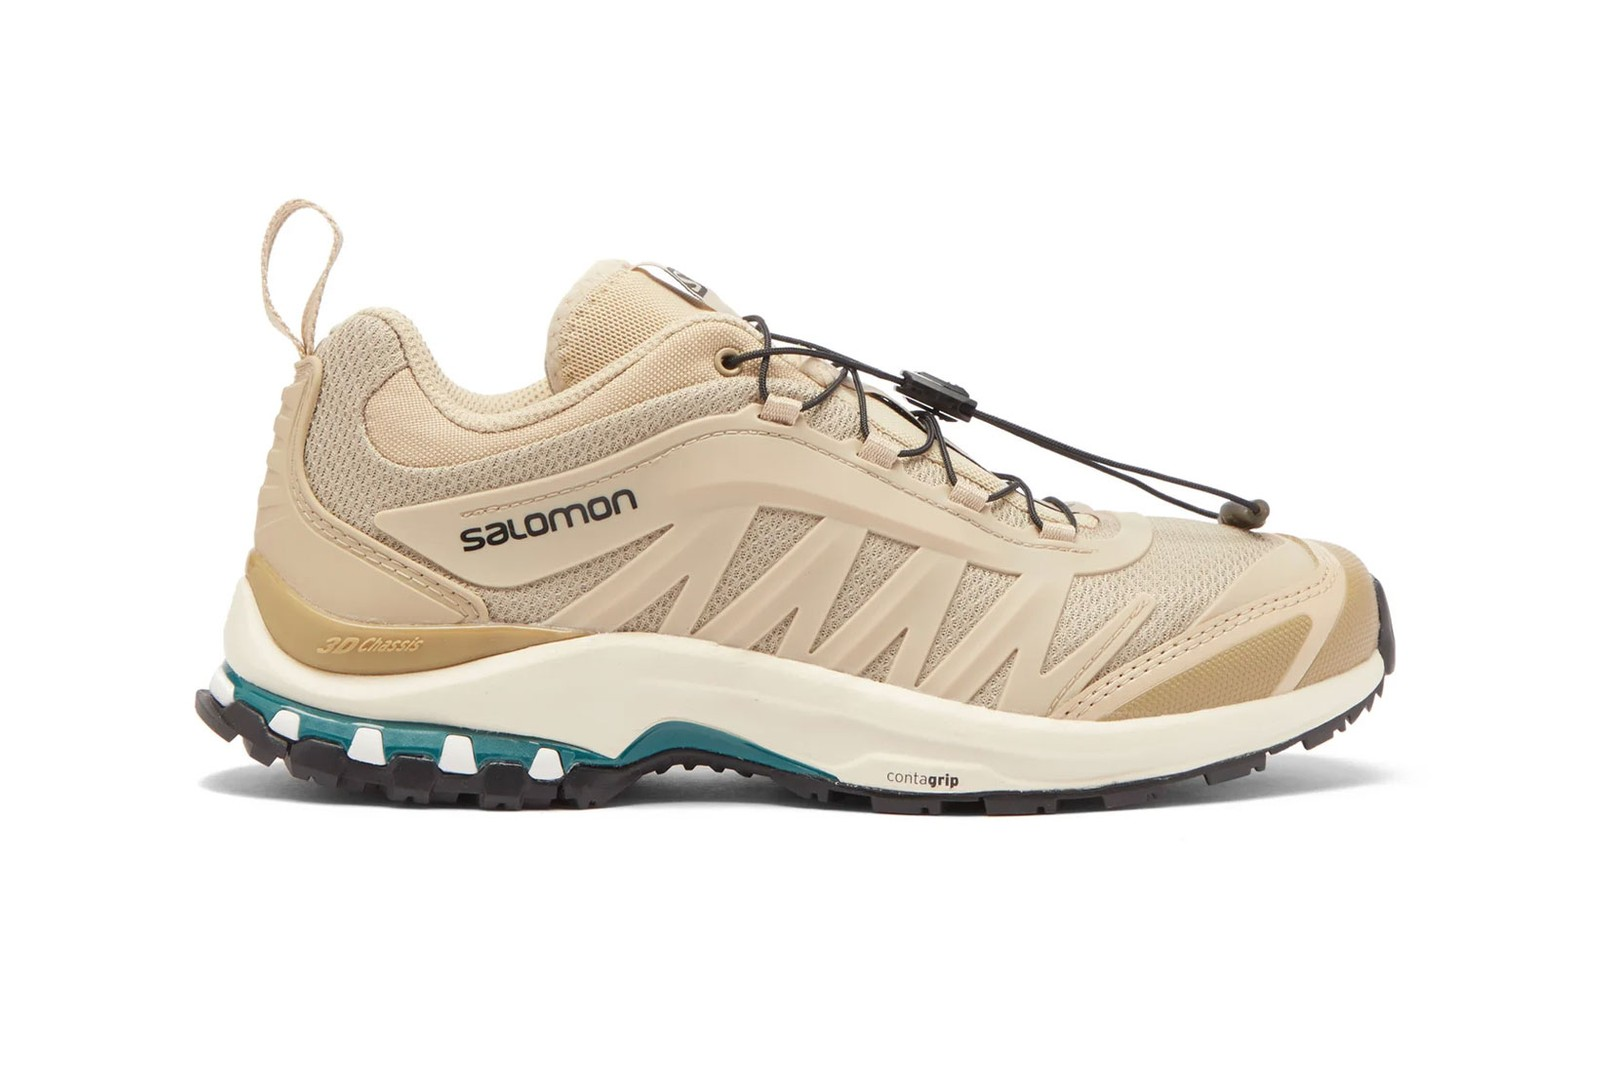 best spring summer sneakers womens off-white out of office pink salomon fumito ganryu comme des garcons shirt asics price where to buy